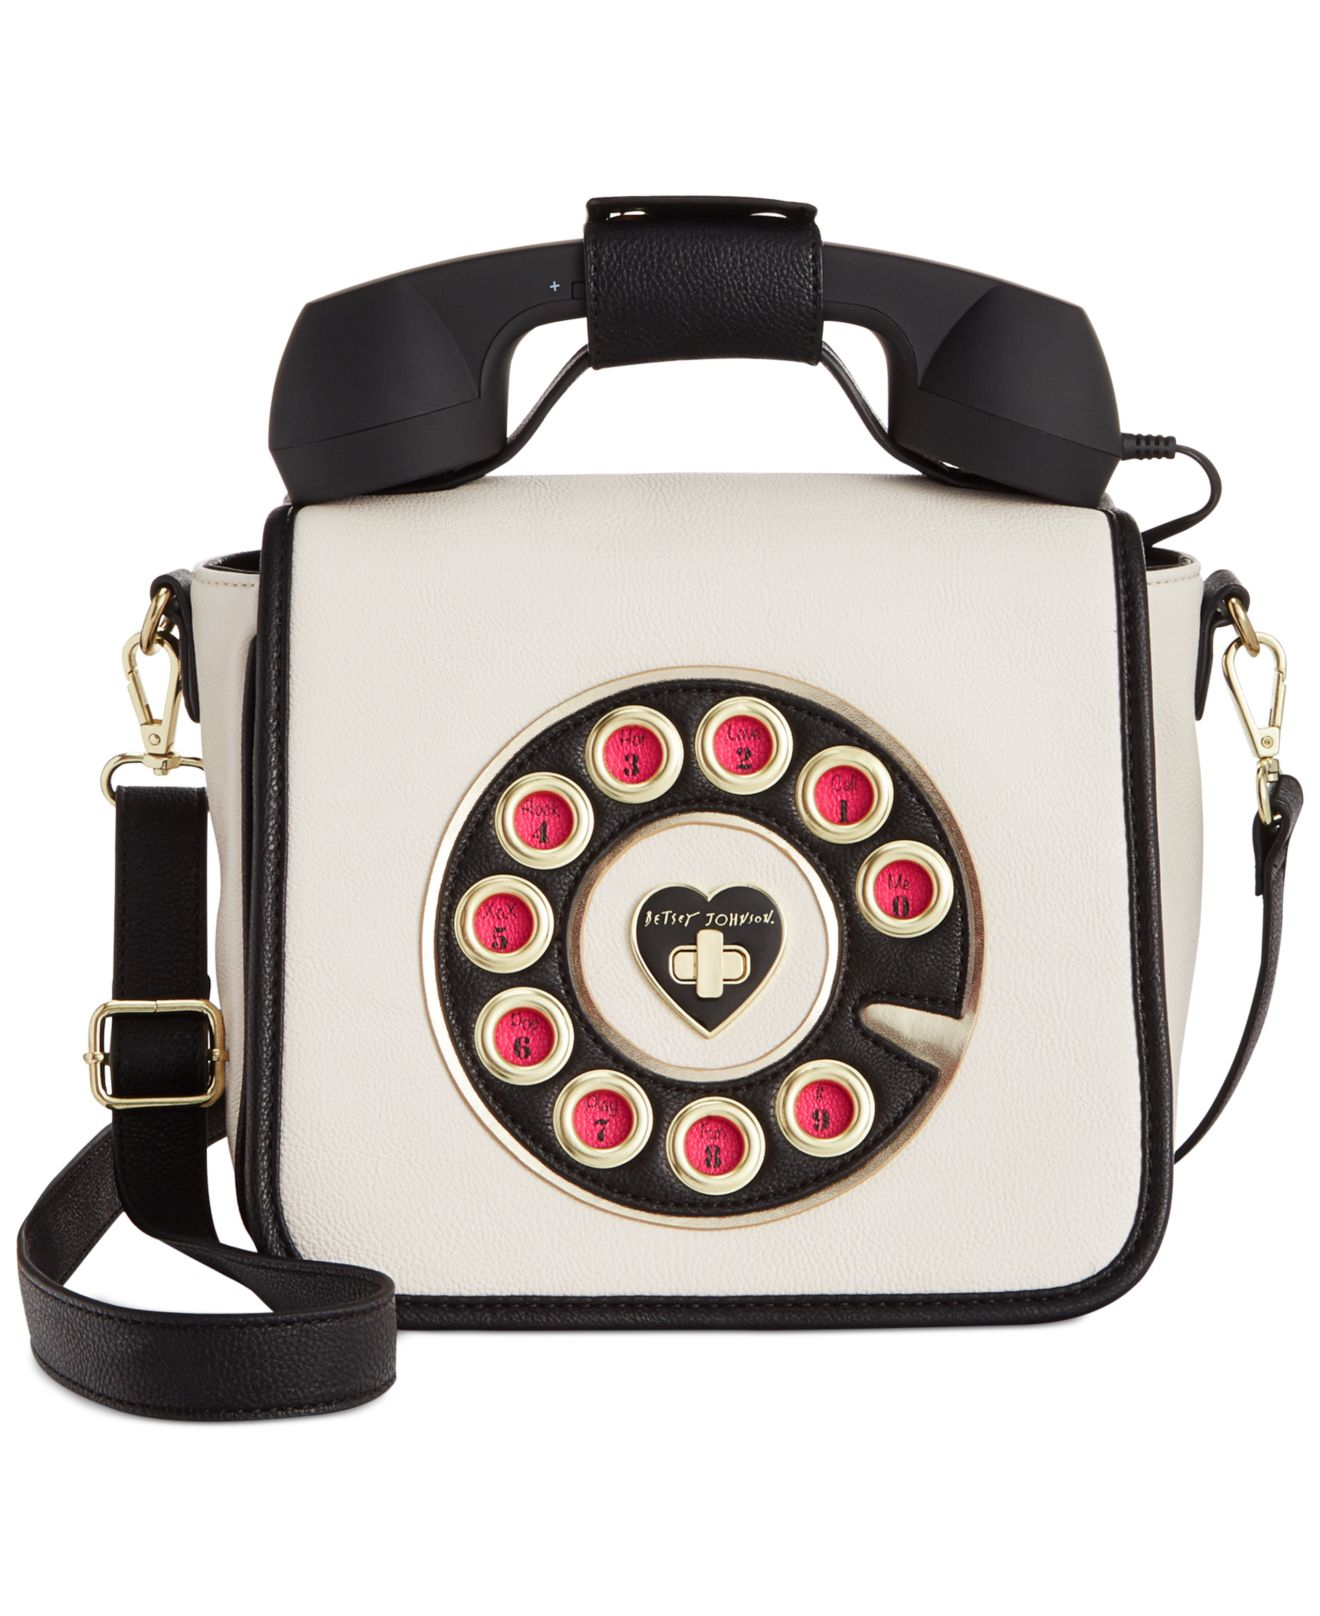 Kate Spade Telephone Purse Best Image Ccdbb. Gallery. Lyst Betsey Johnson Phone Crossbody In Natural